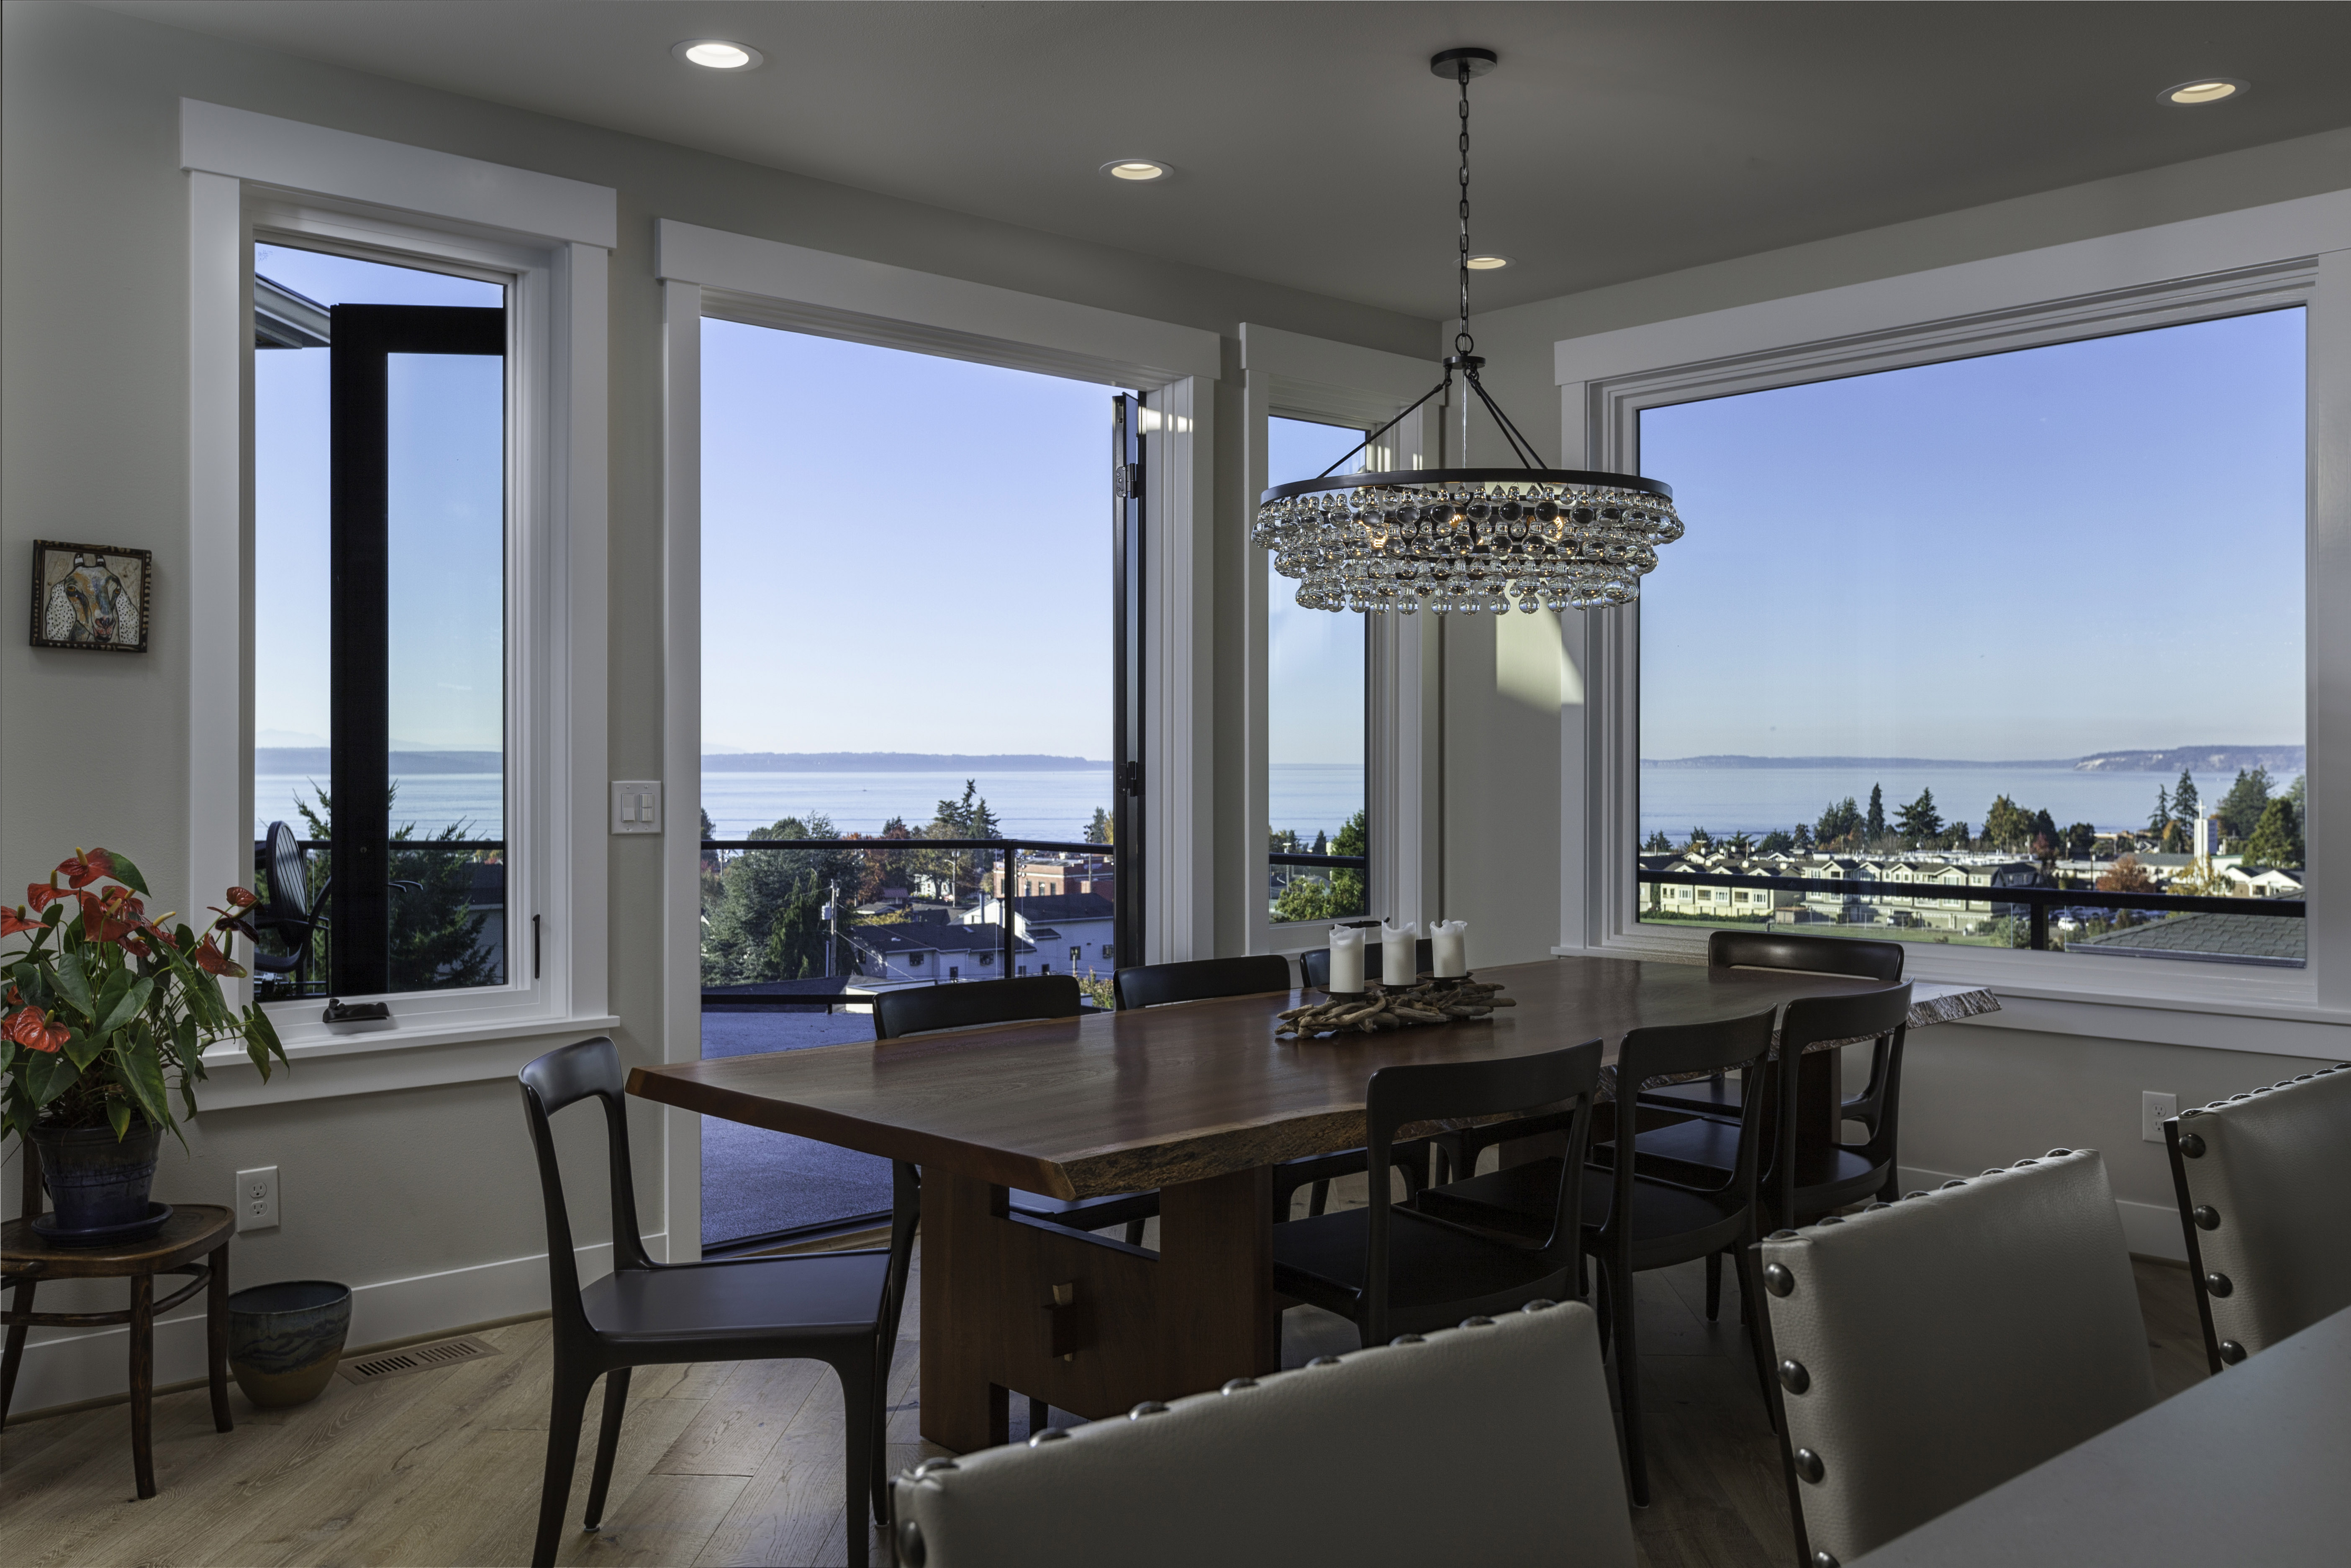 ... Dining Light House On Puget Sound 820x420 ...